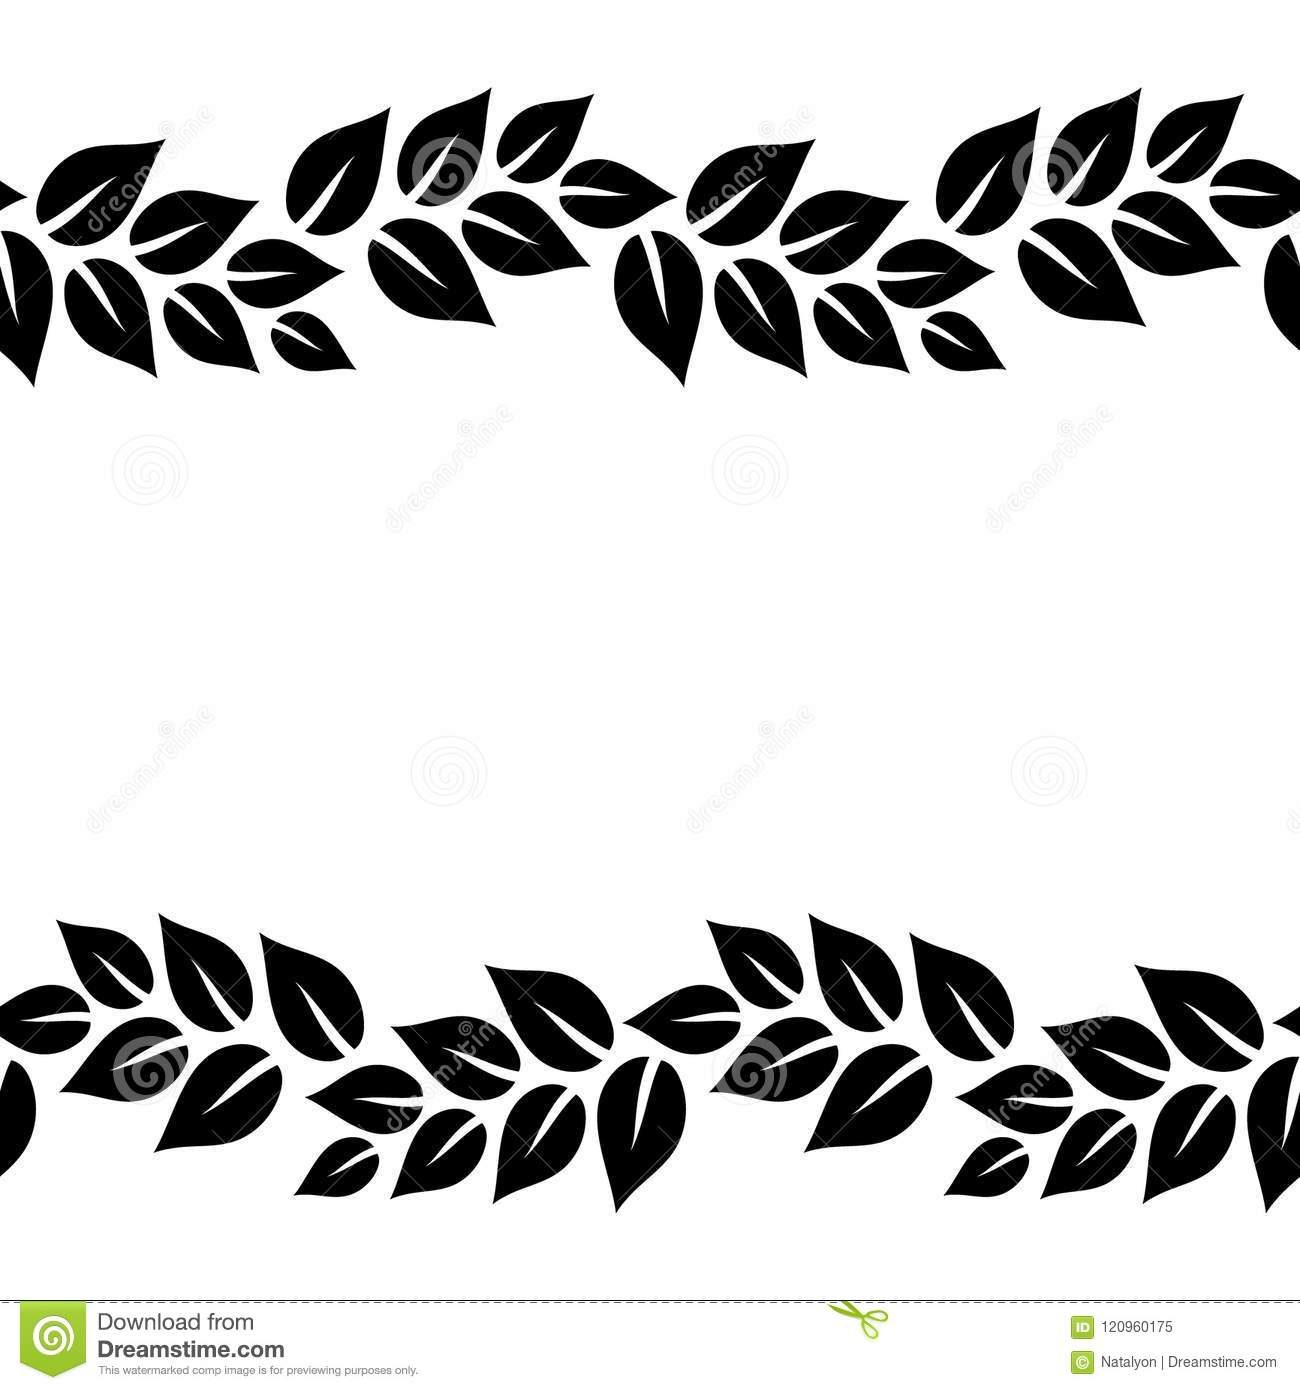 Black And White Elegant Leaves Seamless Border Frame, Vector.